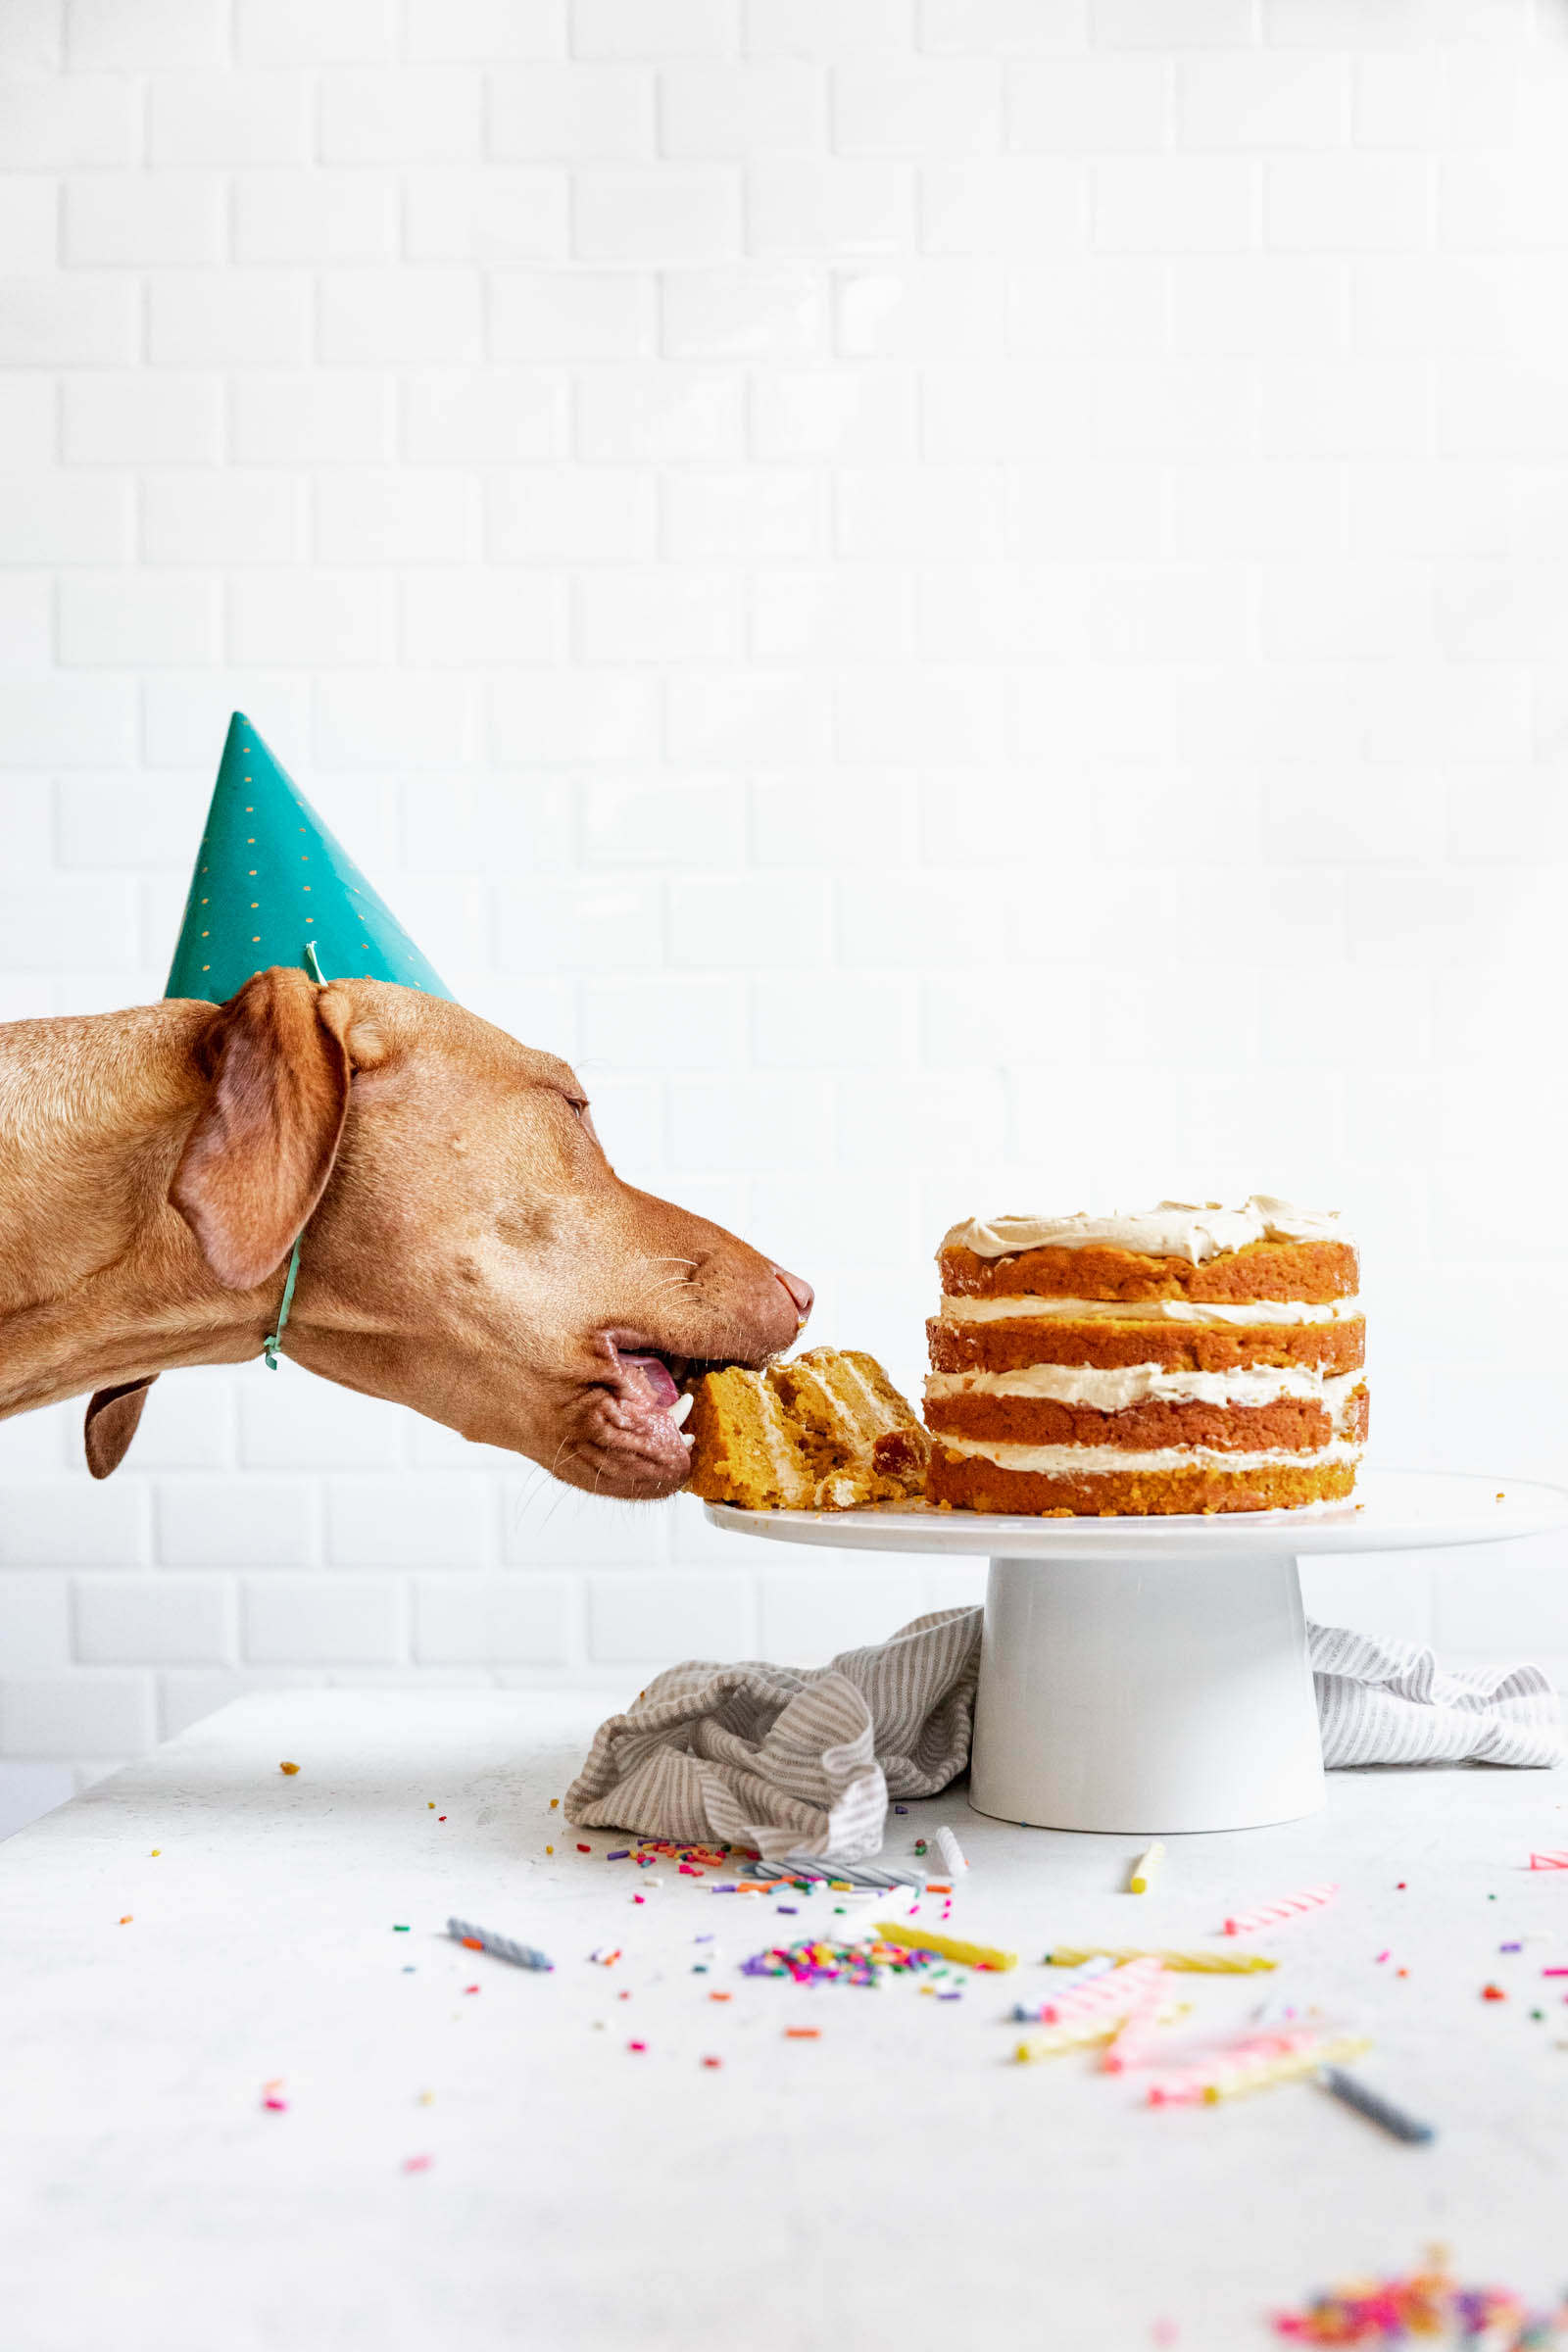 Strange Dog Birthday Cake Recipe How To Make Cake For Your Dog Personalised Birthday Cards Paralily Jamesorg